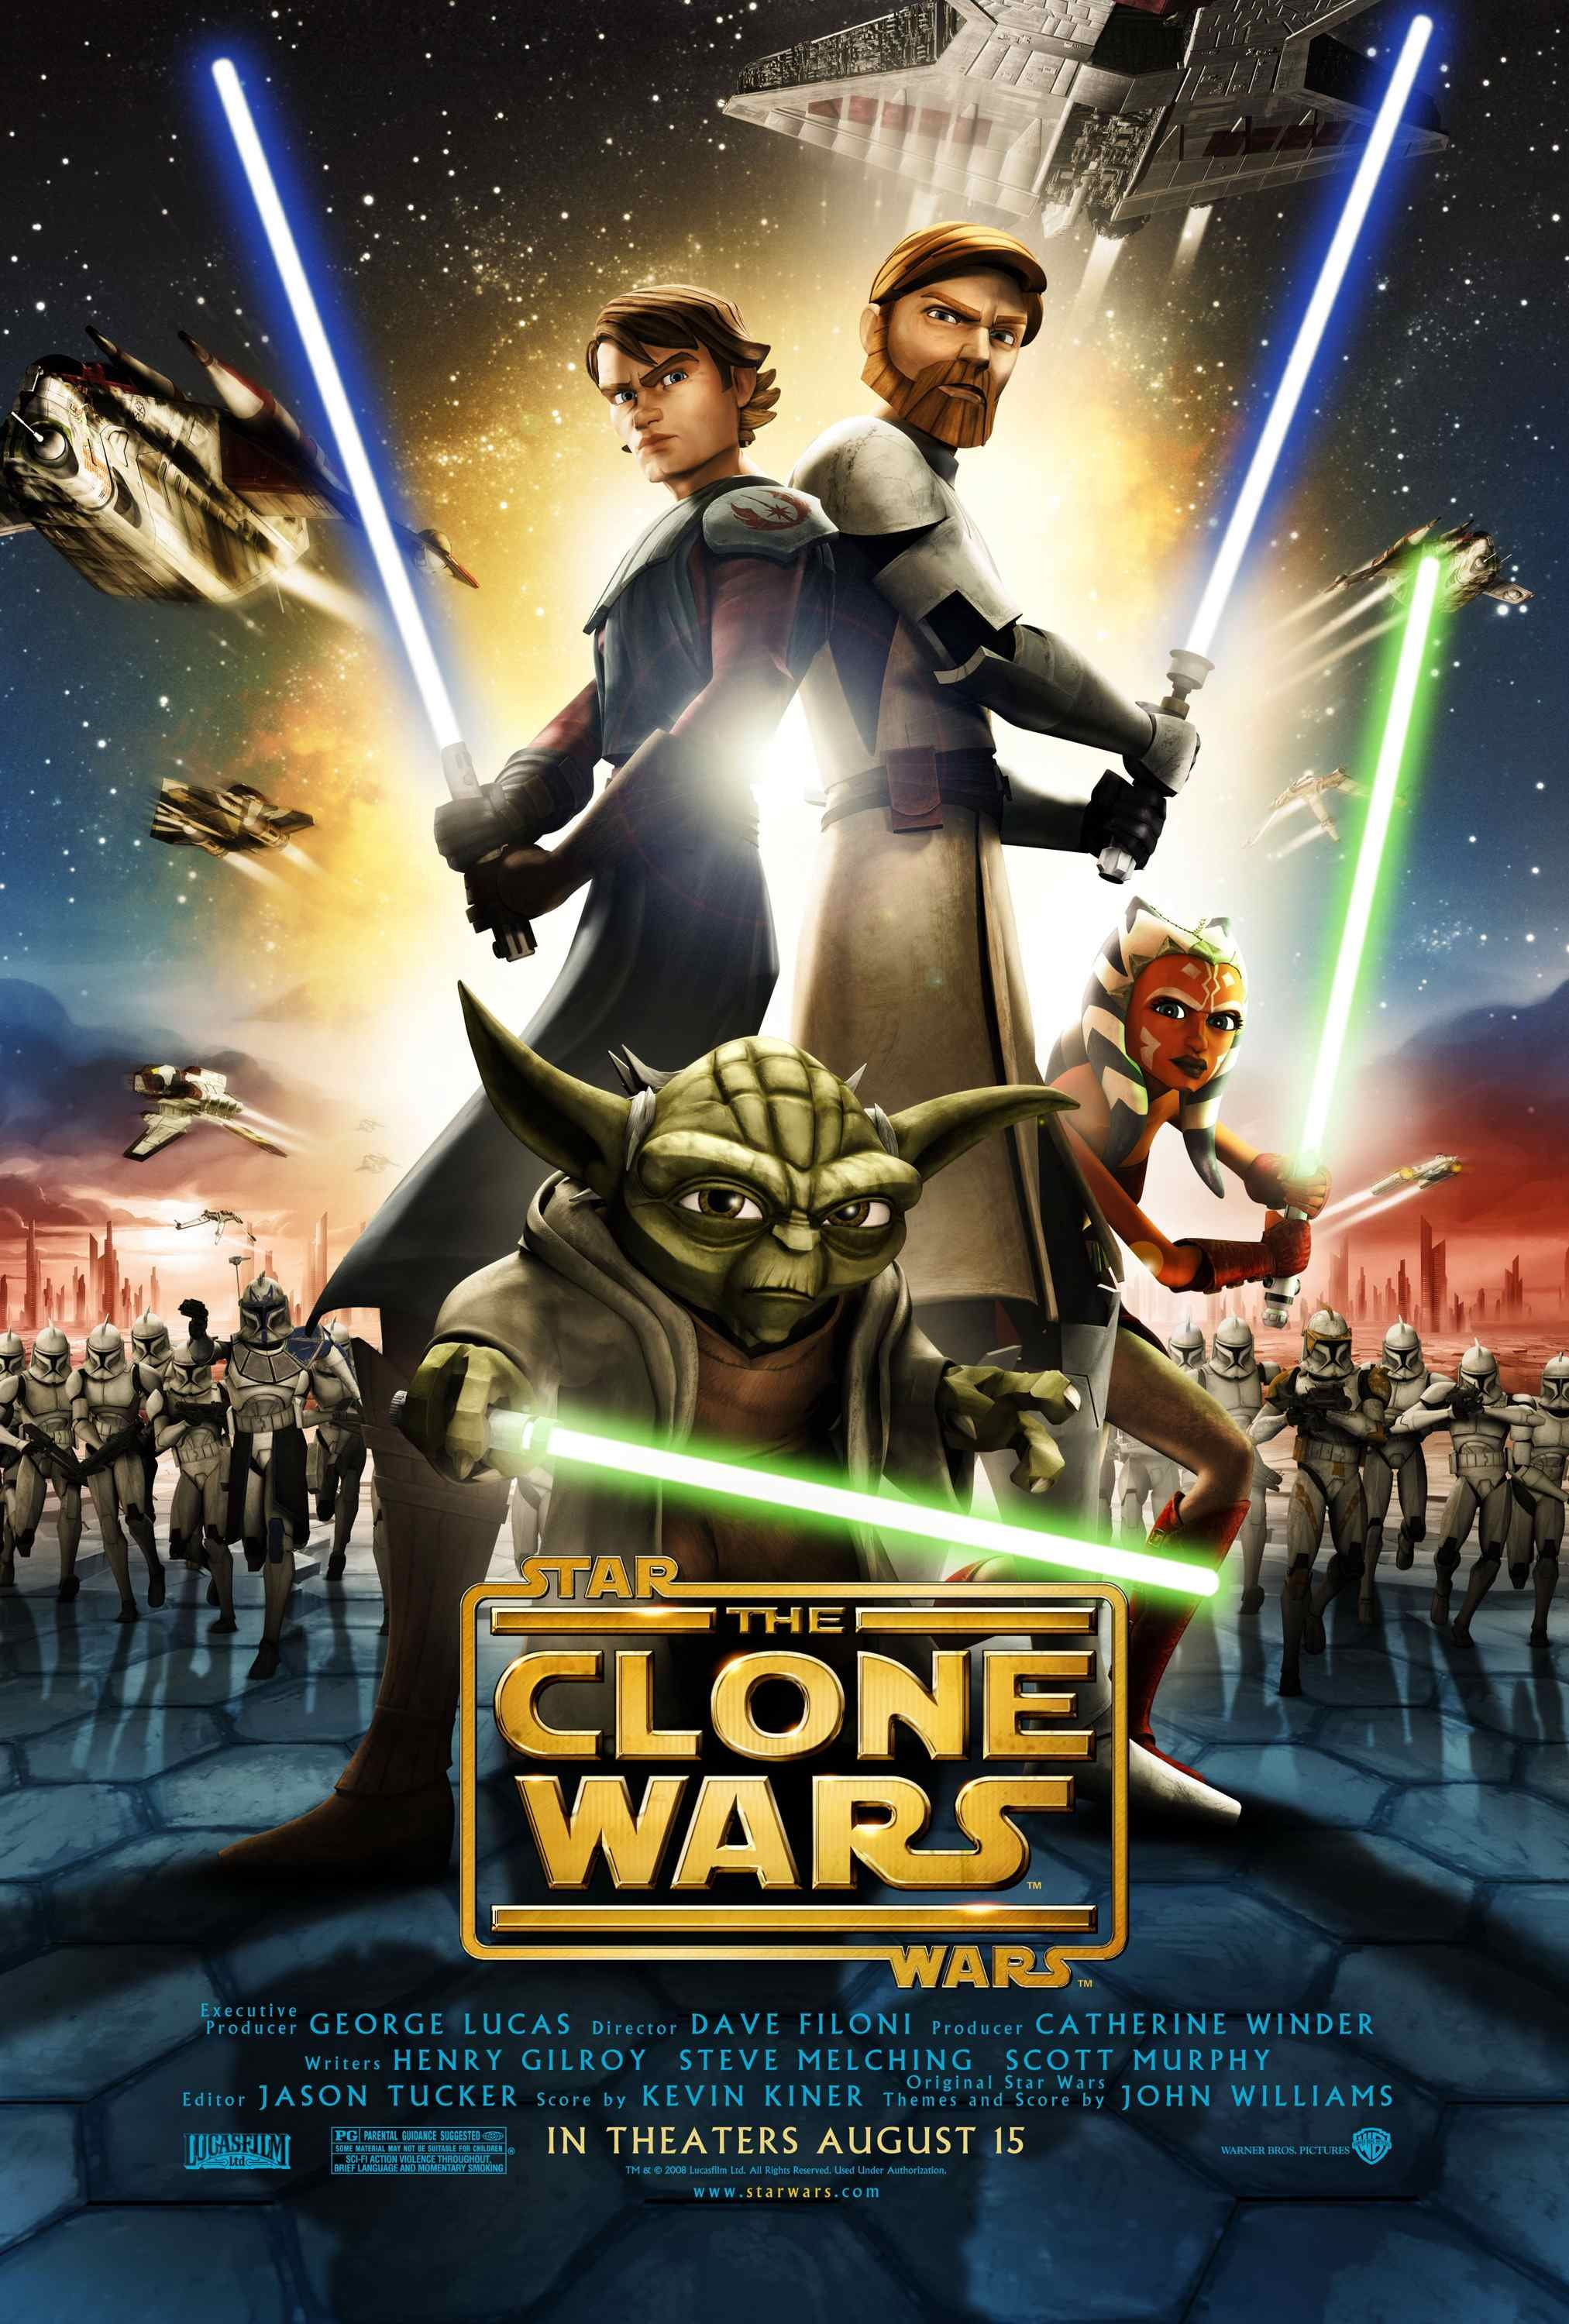 Star wars the clone wars 2008 poster